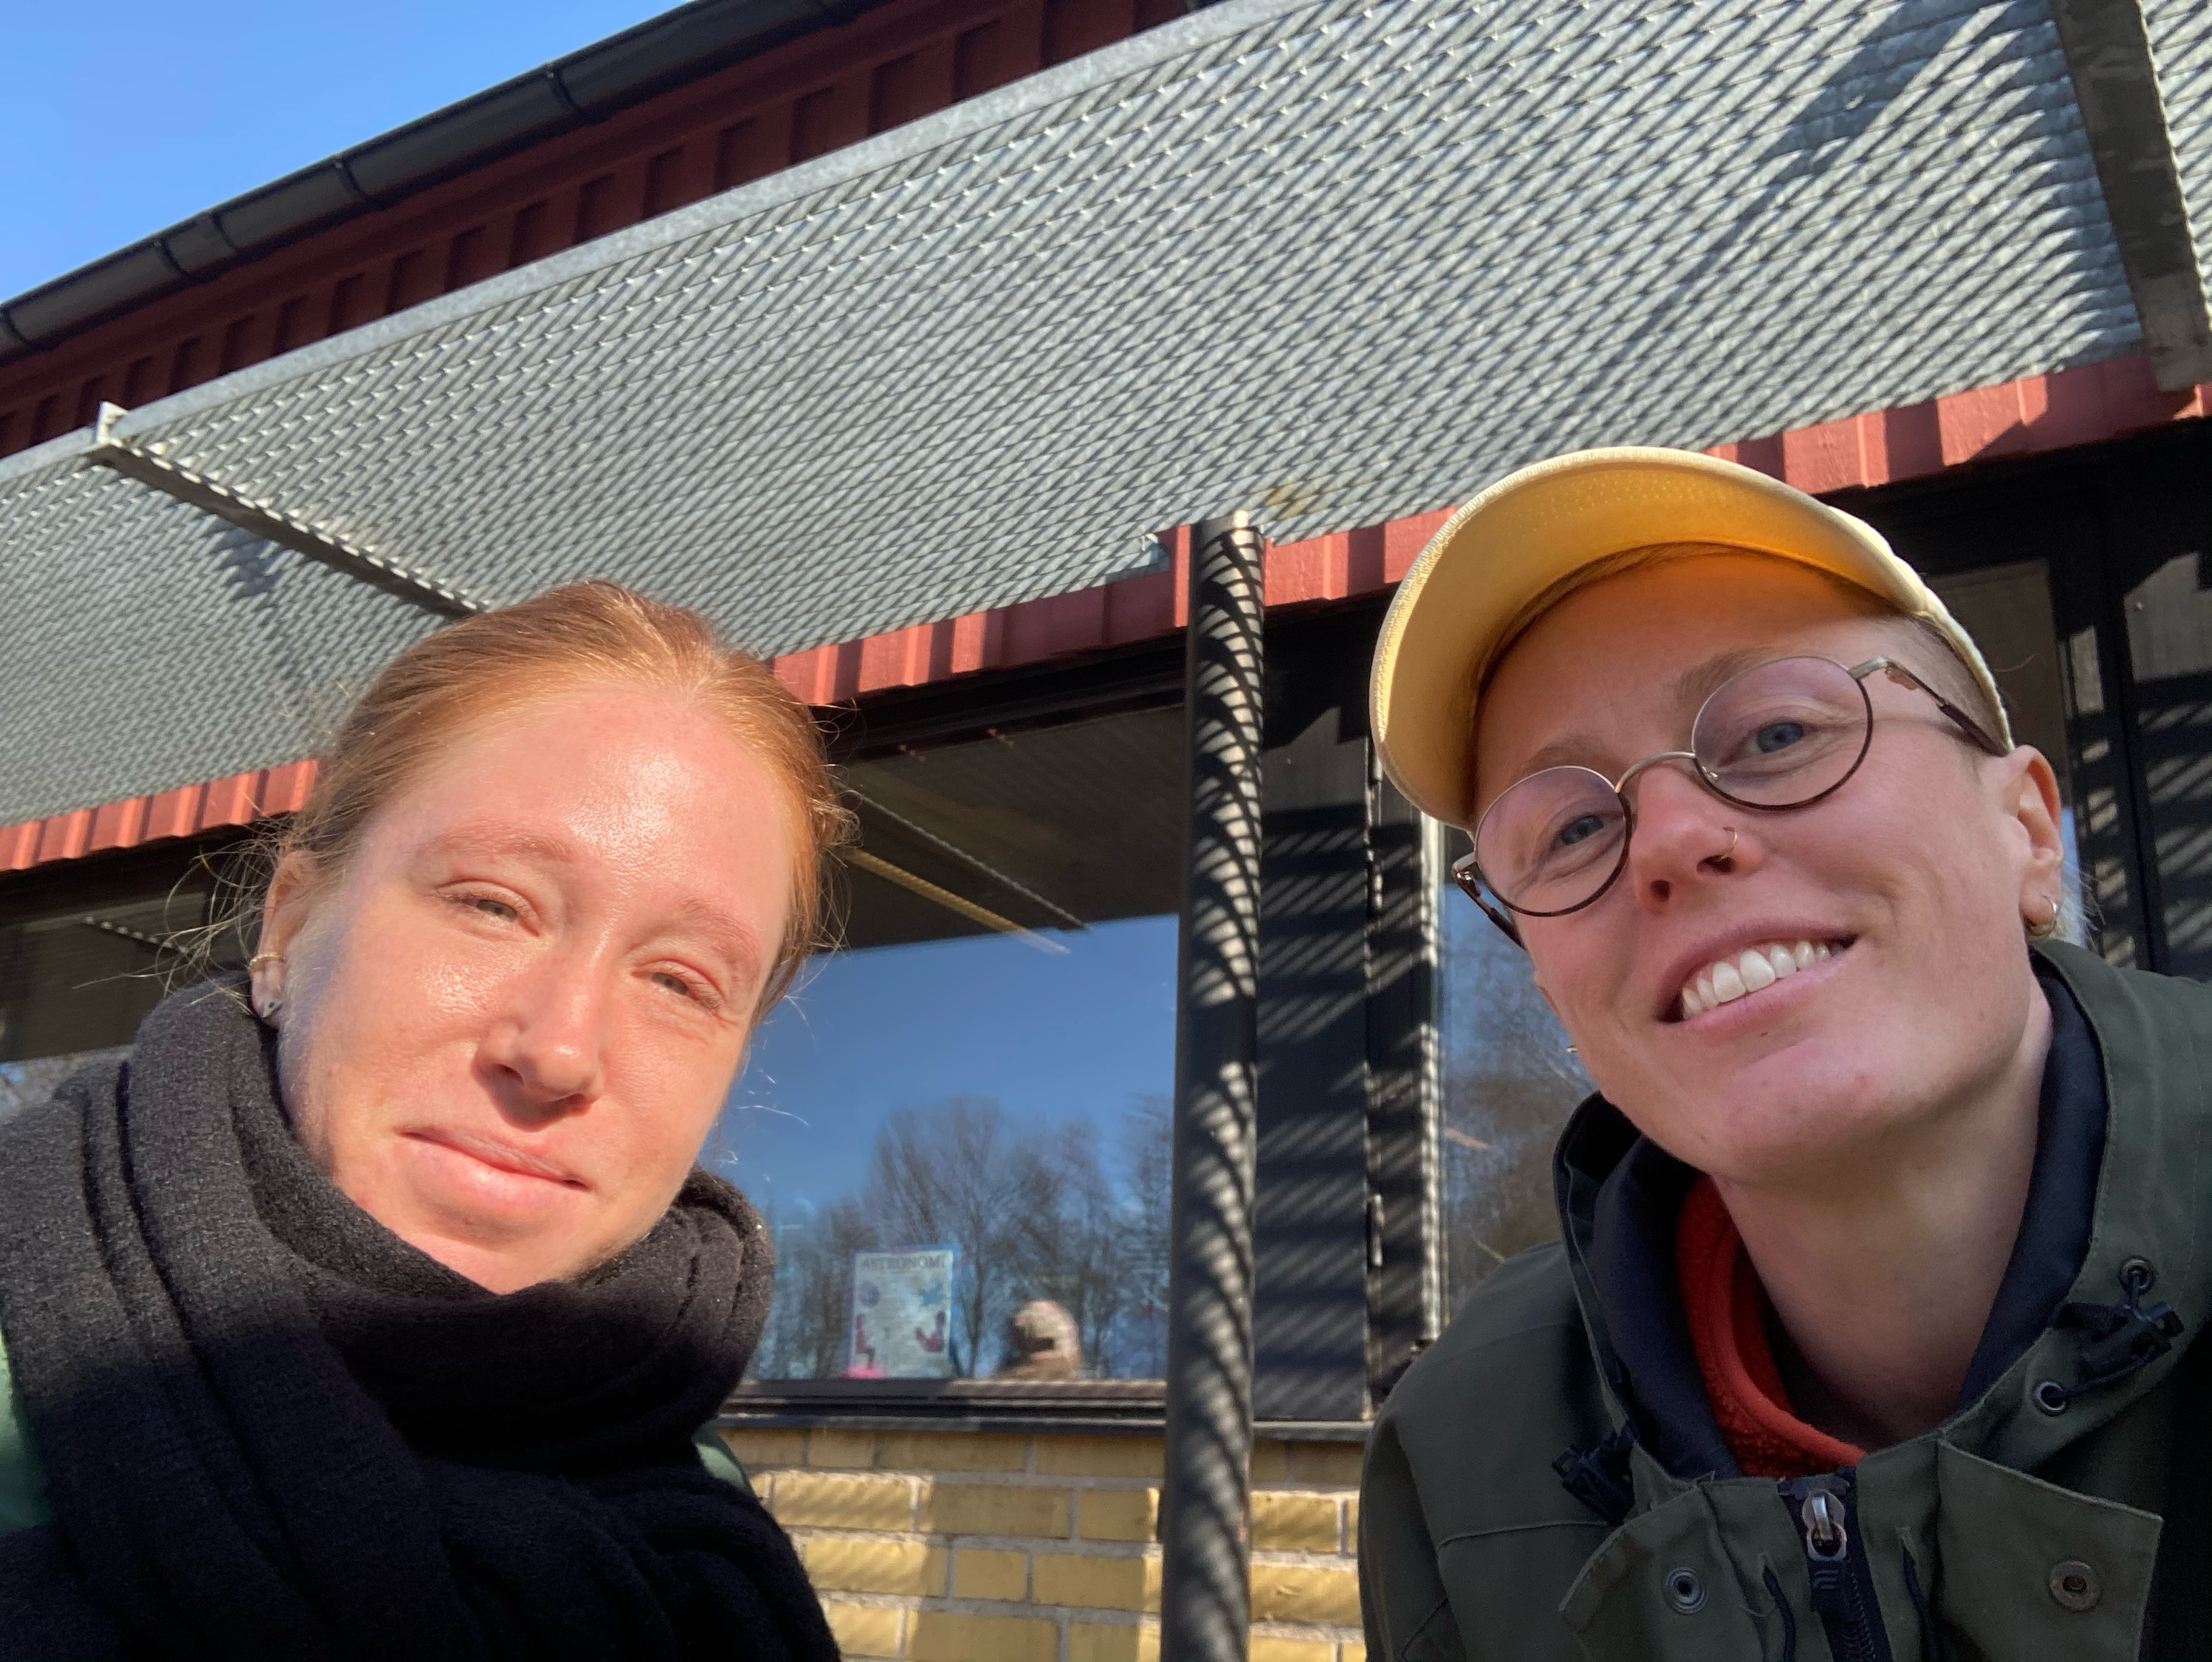 The image shows dancers Felicia Sparrström and Hannah Karlsson. Felicia on the left is wearing a thick black scarf. Hannah on the right is wearing a yellow cap and glasses.